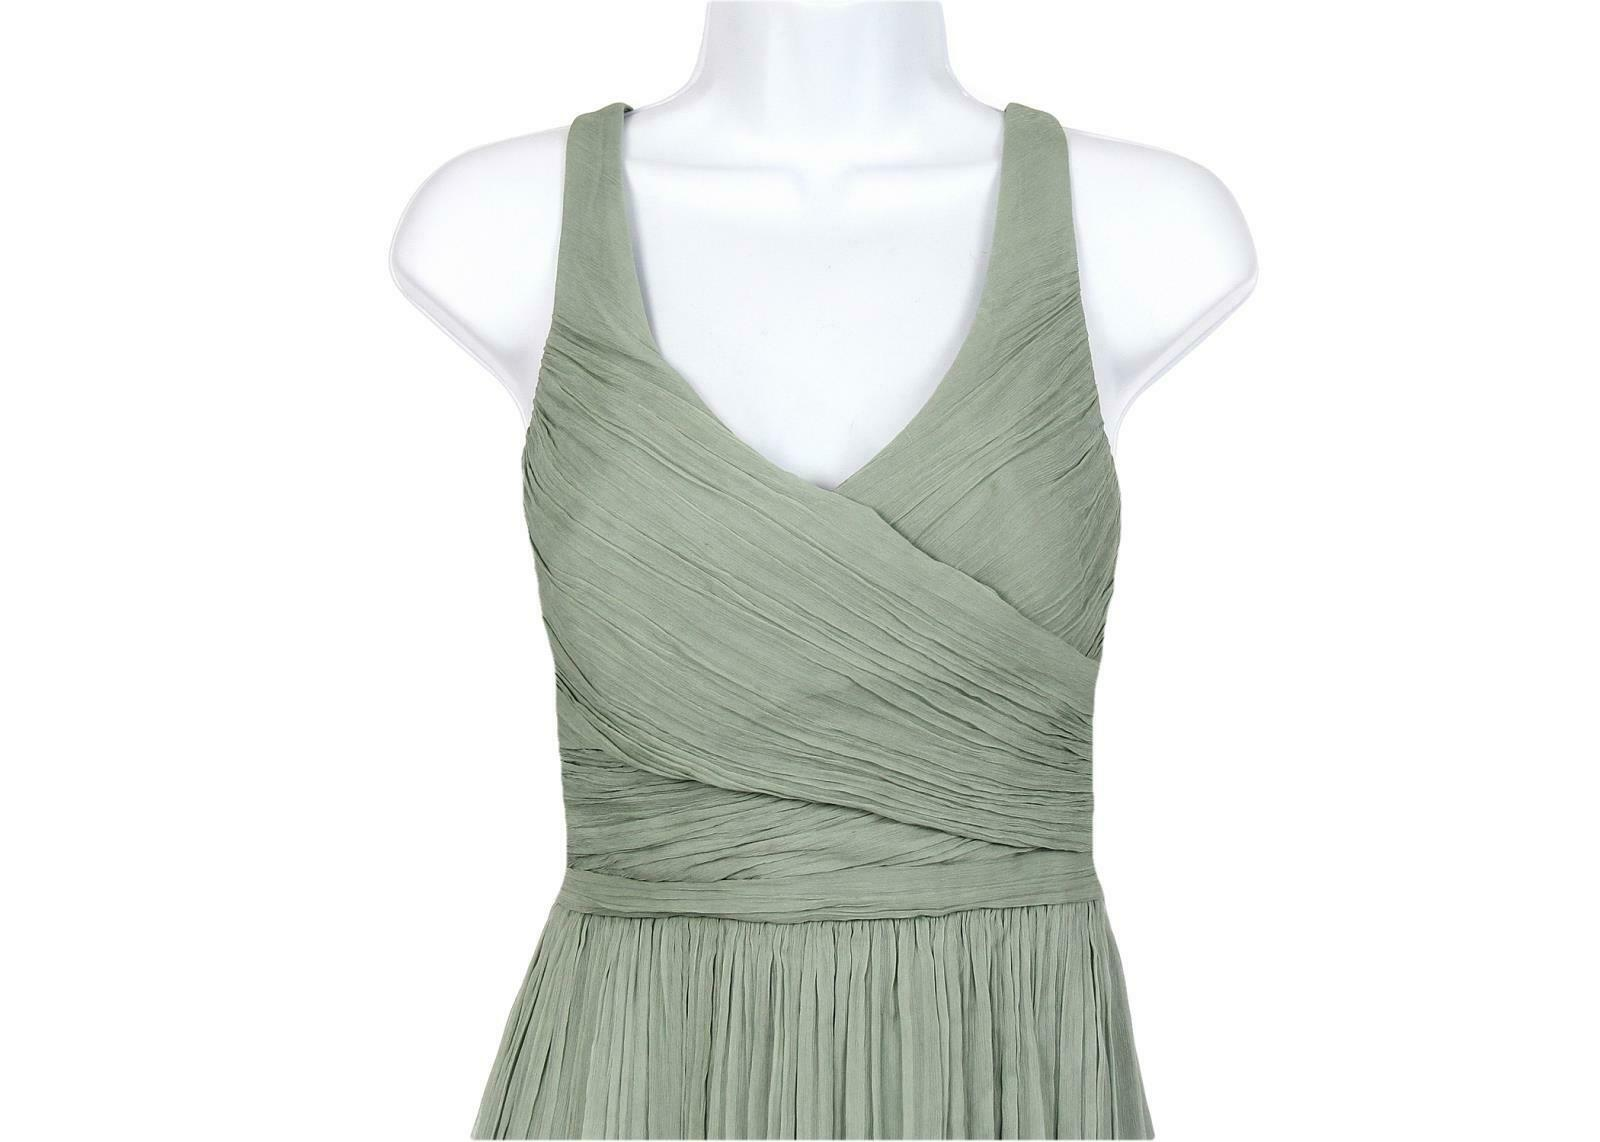 J Crew Women's Heidi Long Dress in Silk Chiffon Dusty Shale Sz 6 93075 image 3